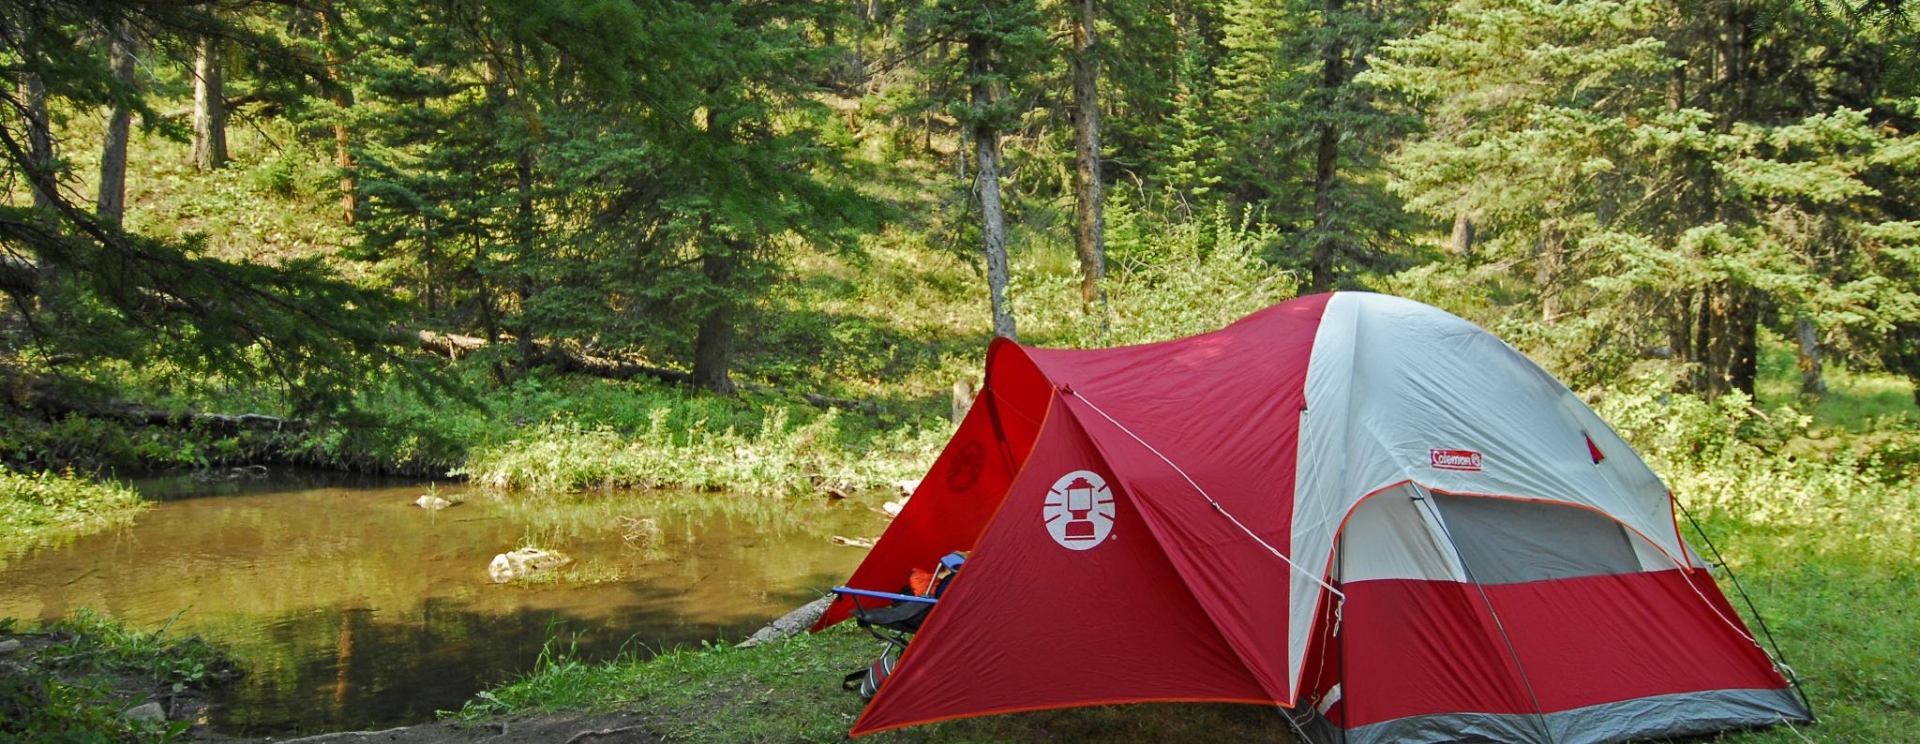 Camping in the Black Hills National Forest